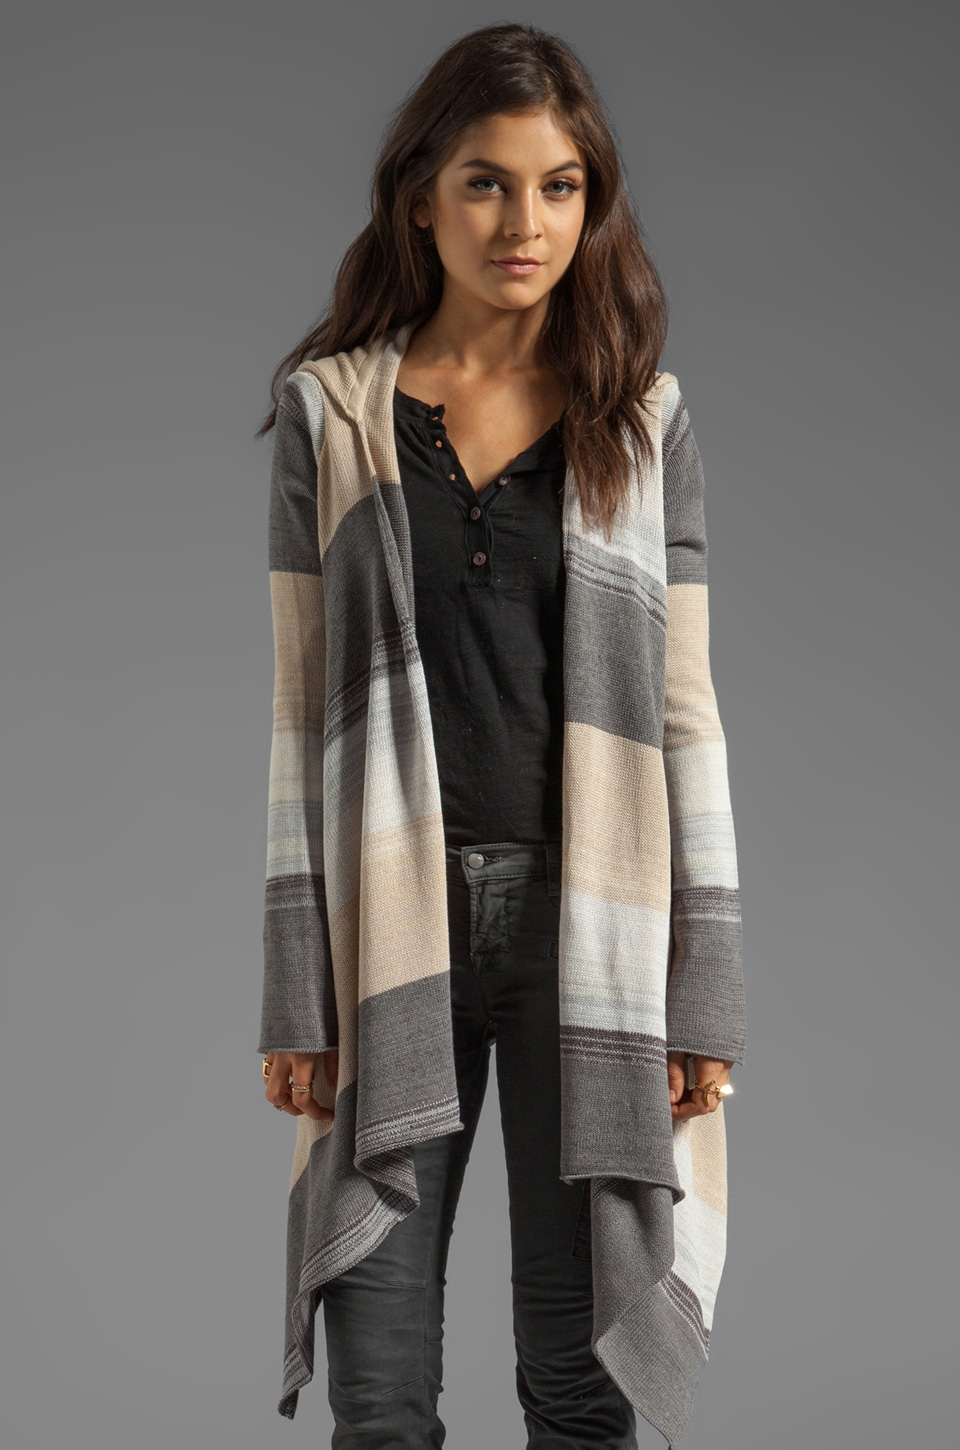 Goddis Leona Cardigan in Razor Grey